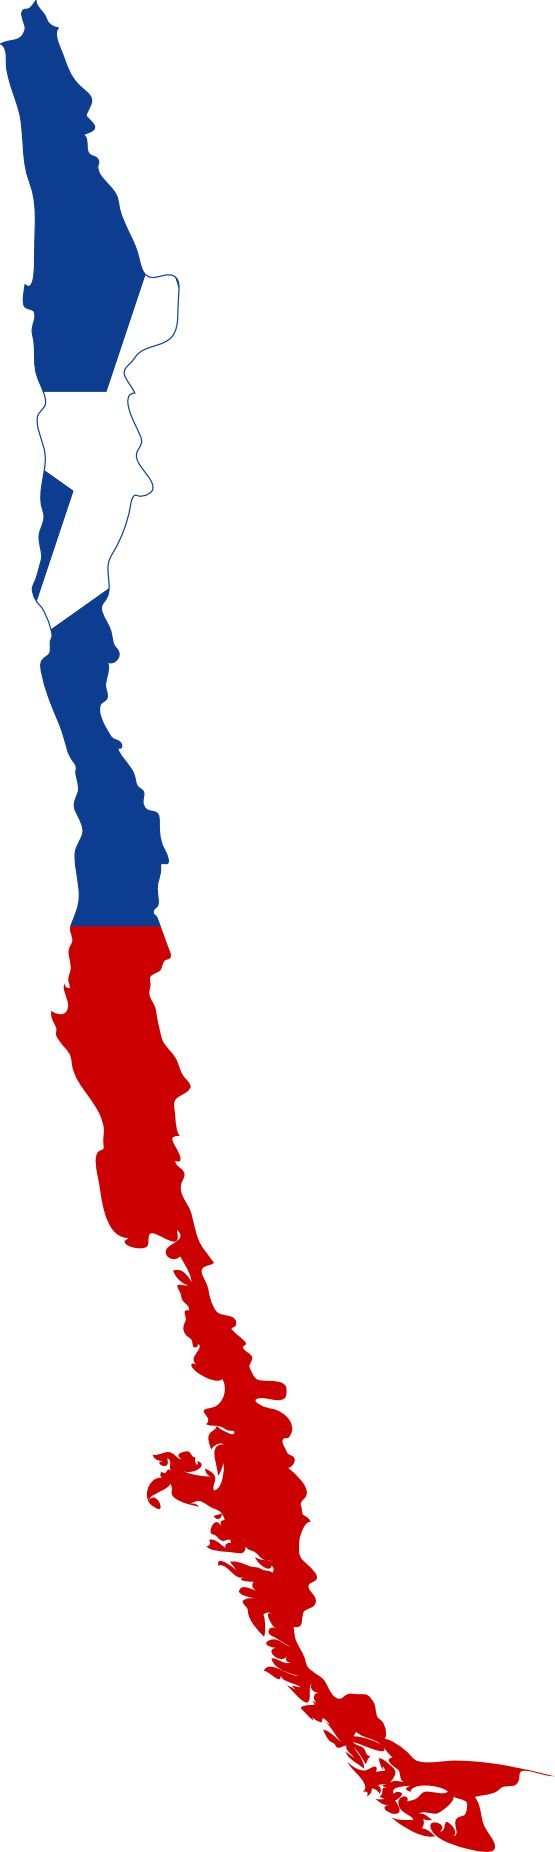 Chile Clip Art | Flag Map of Chile Flags 2011 Clip Art SVG openclipart.org commons ...